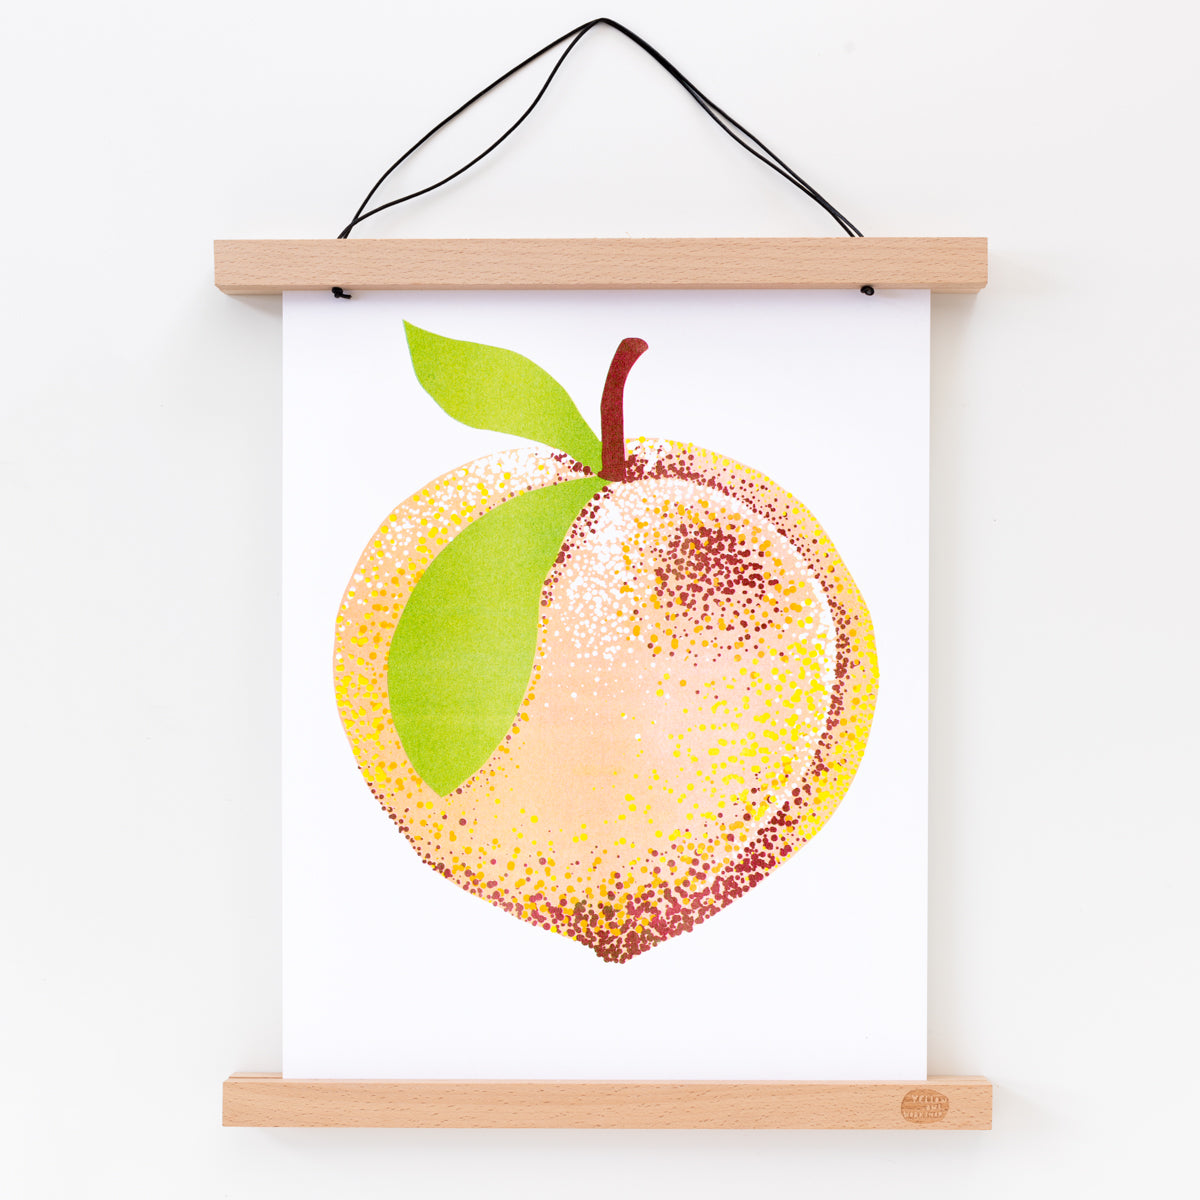 Risograph art print of a peach